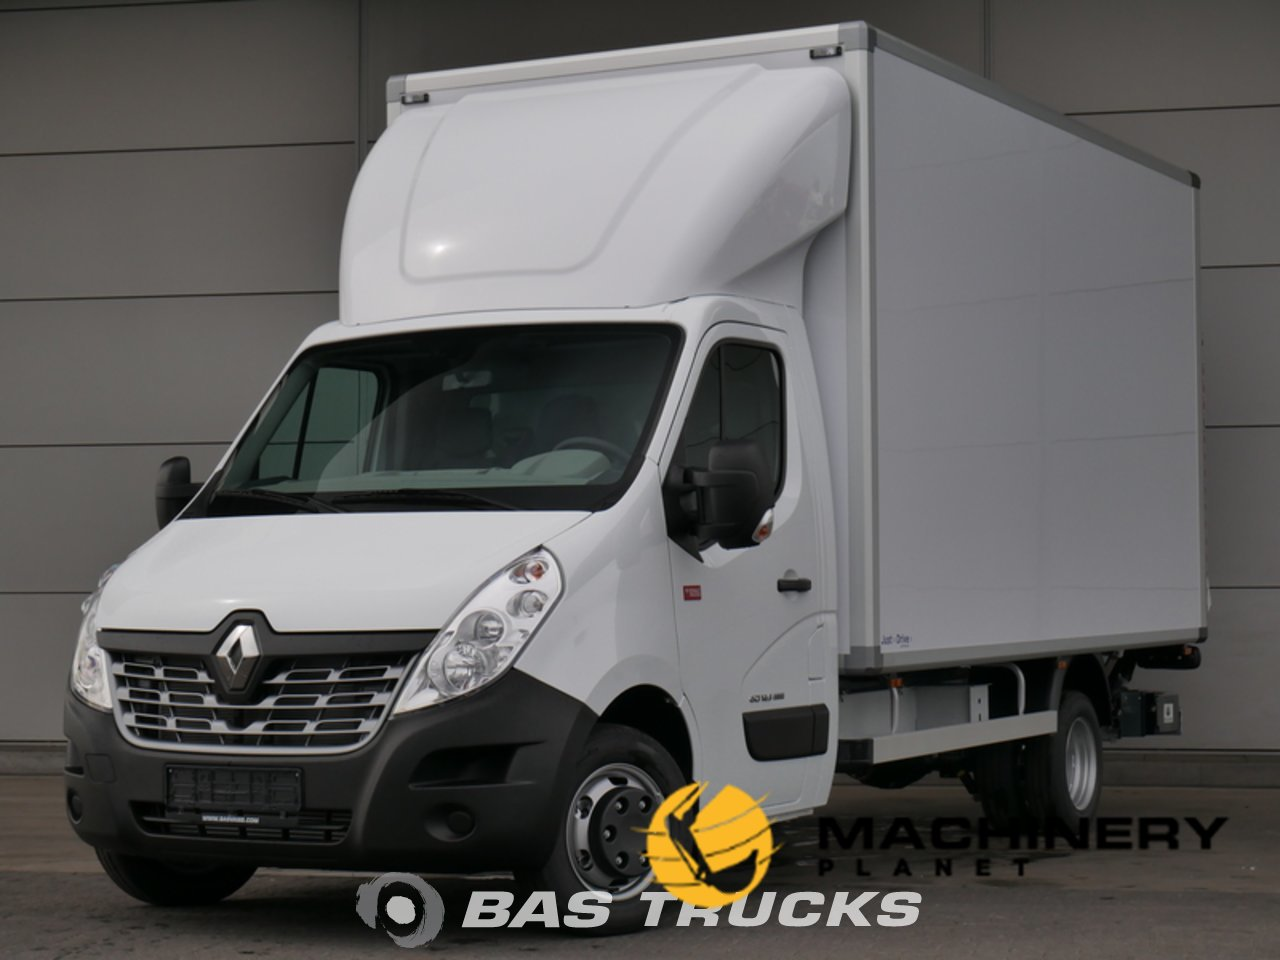 New-Light-commercial-vehicle-Renault-Master_138160_1-1554202345005_5ca33ee9011df-1.jpg